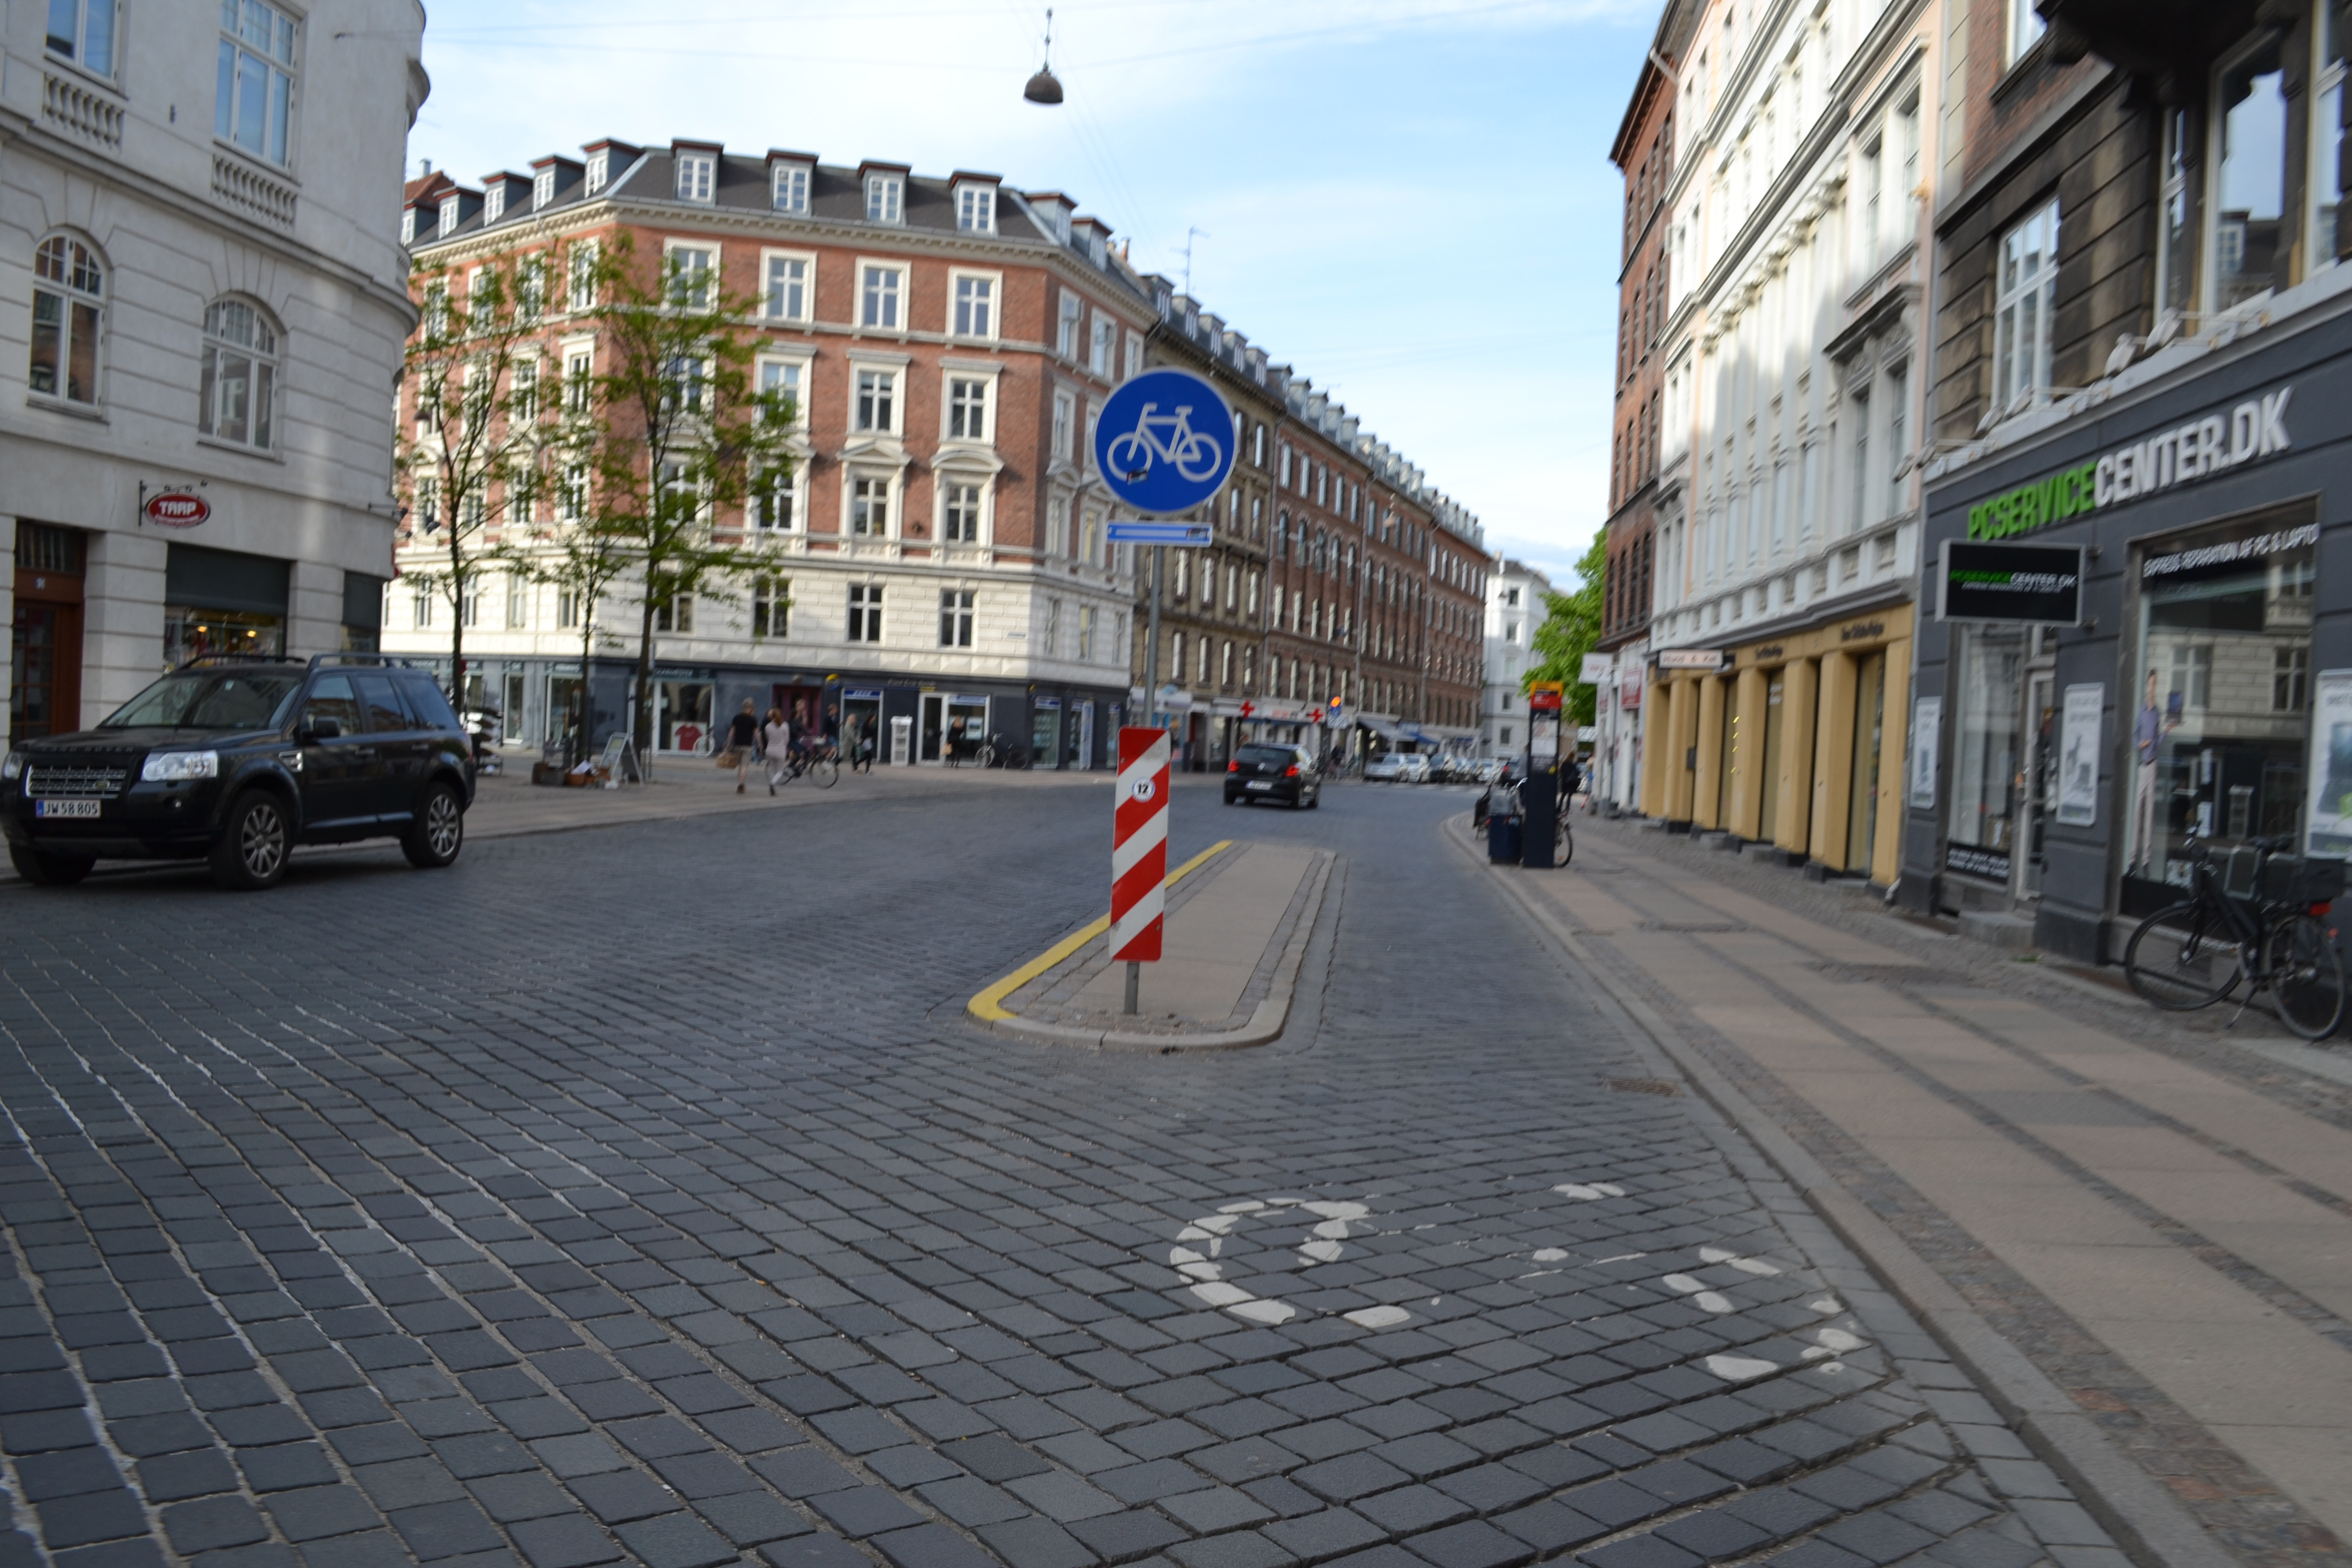 Bus stop with bicycle lane